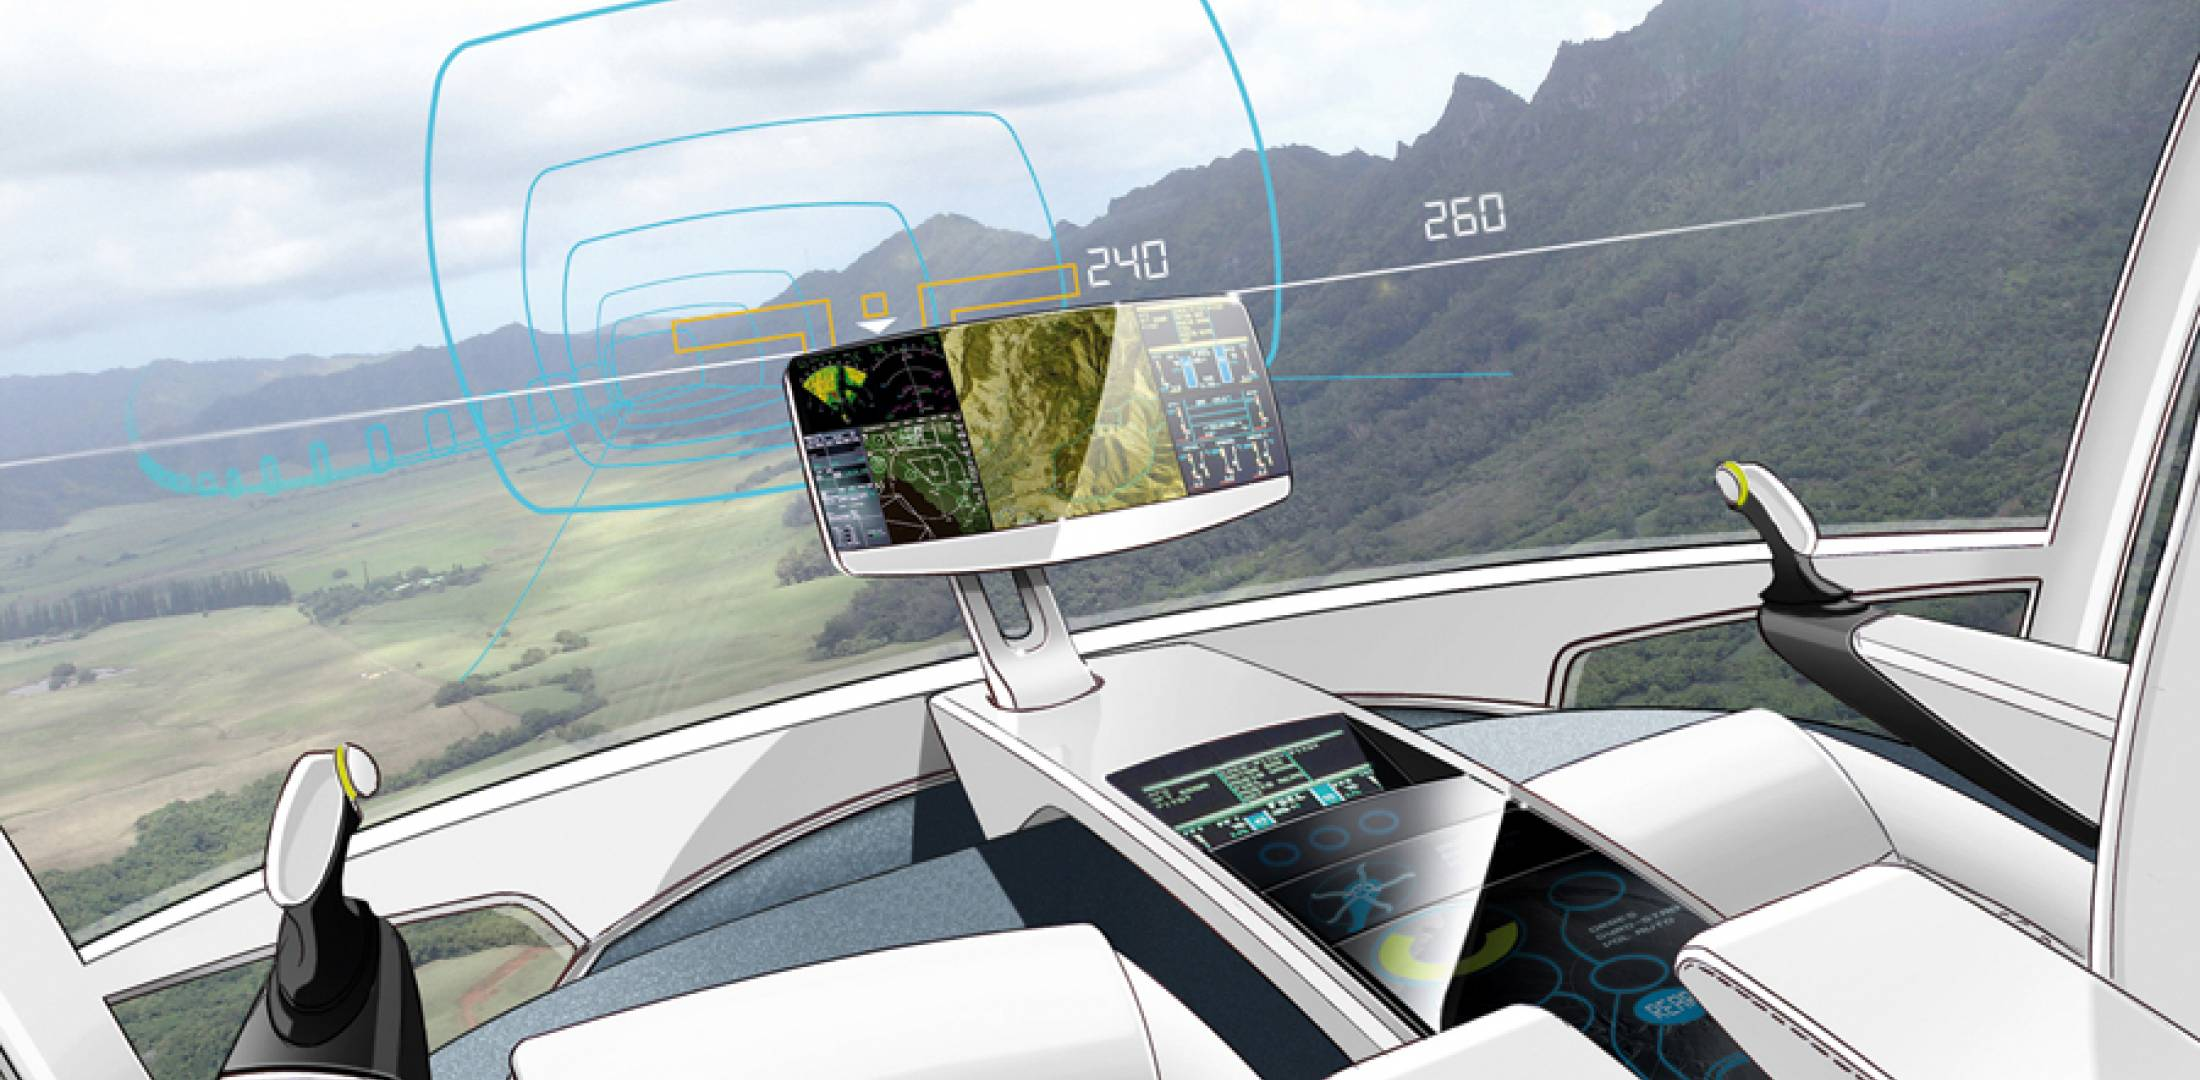 The main cockpit display in Eurocopter's X-4 will be projected on the windshield